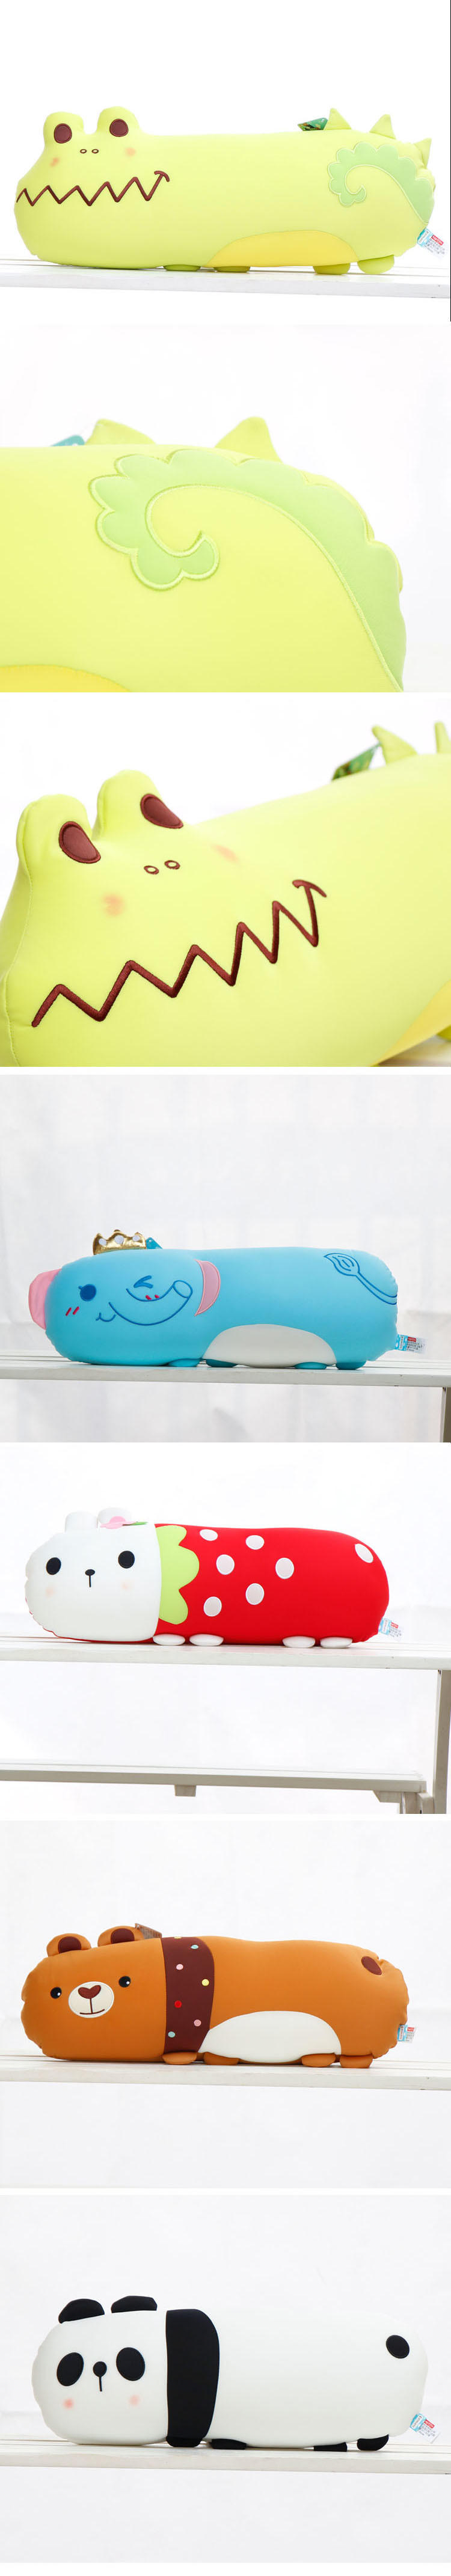 Animal Shaped Massage Pillow : China Plush Soft Touch Feeling Animal Shaped Cute Travel Pillow - China Animal Shaped Pillow, Cute